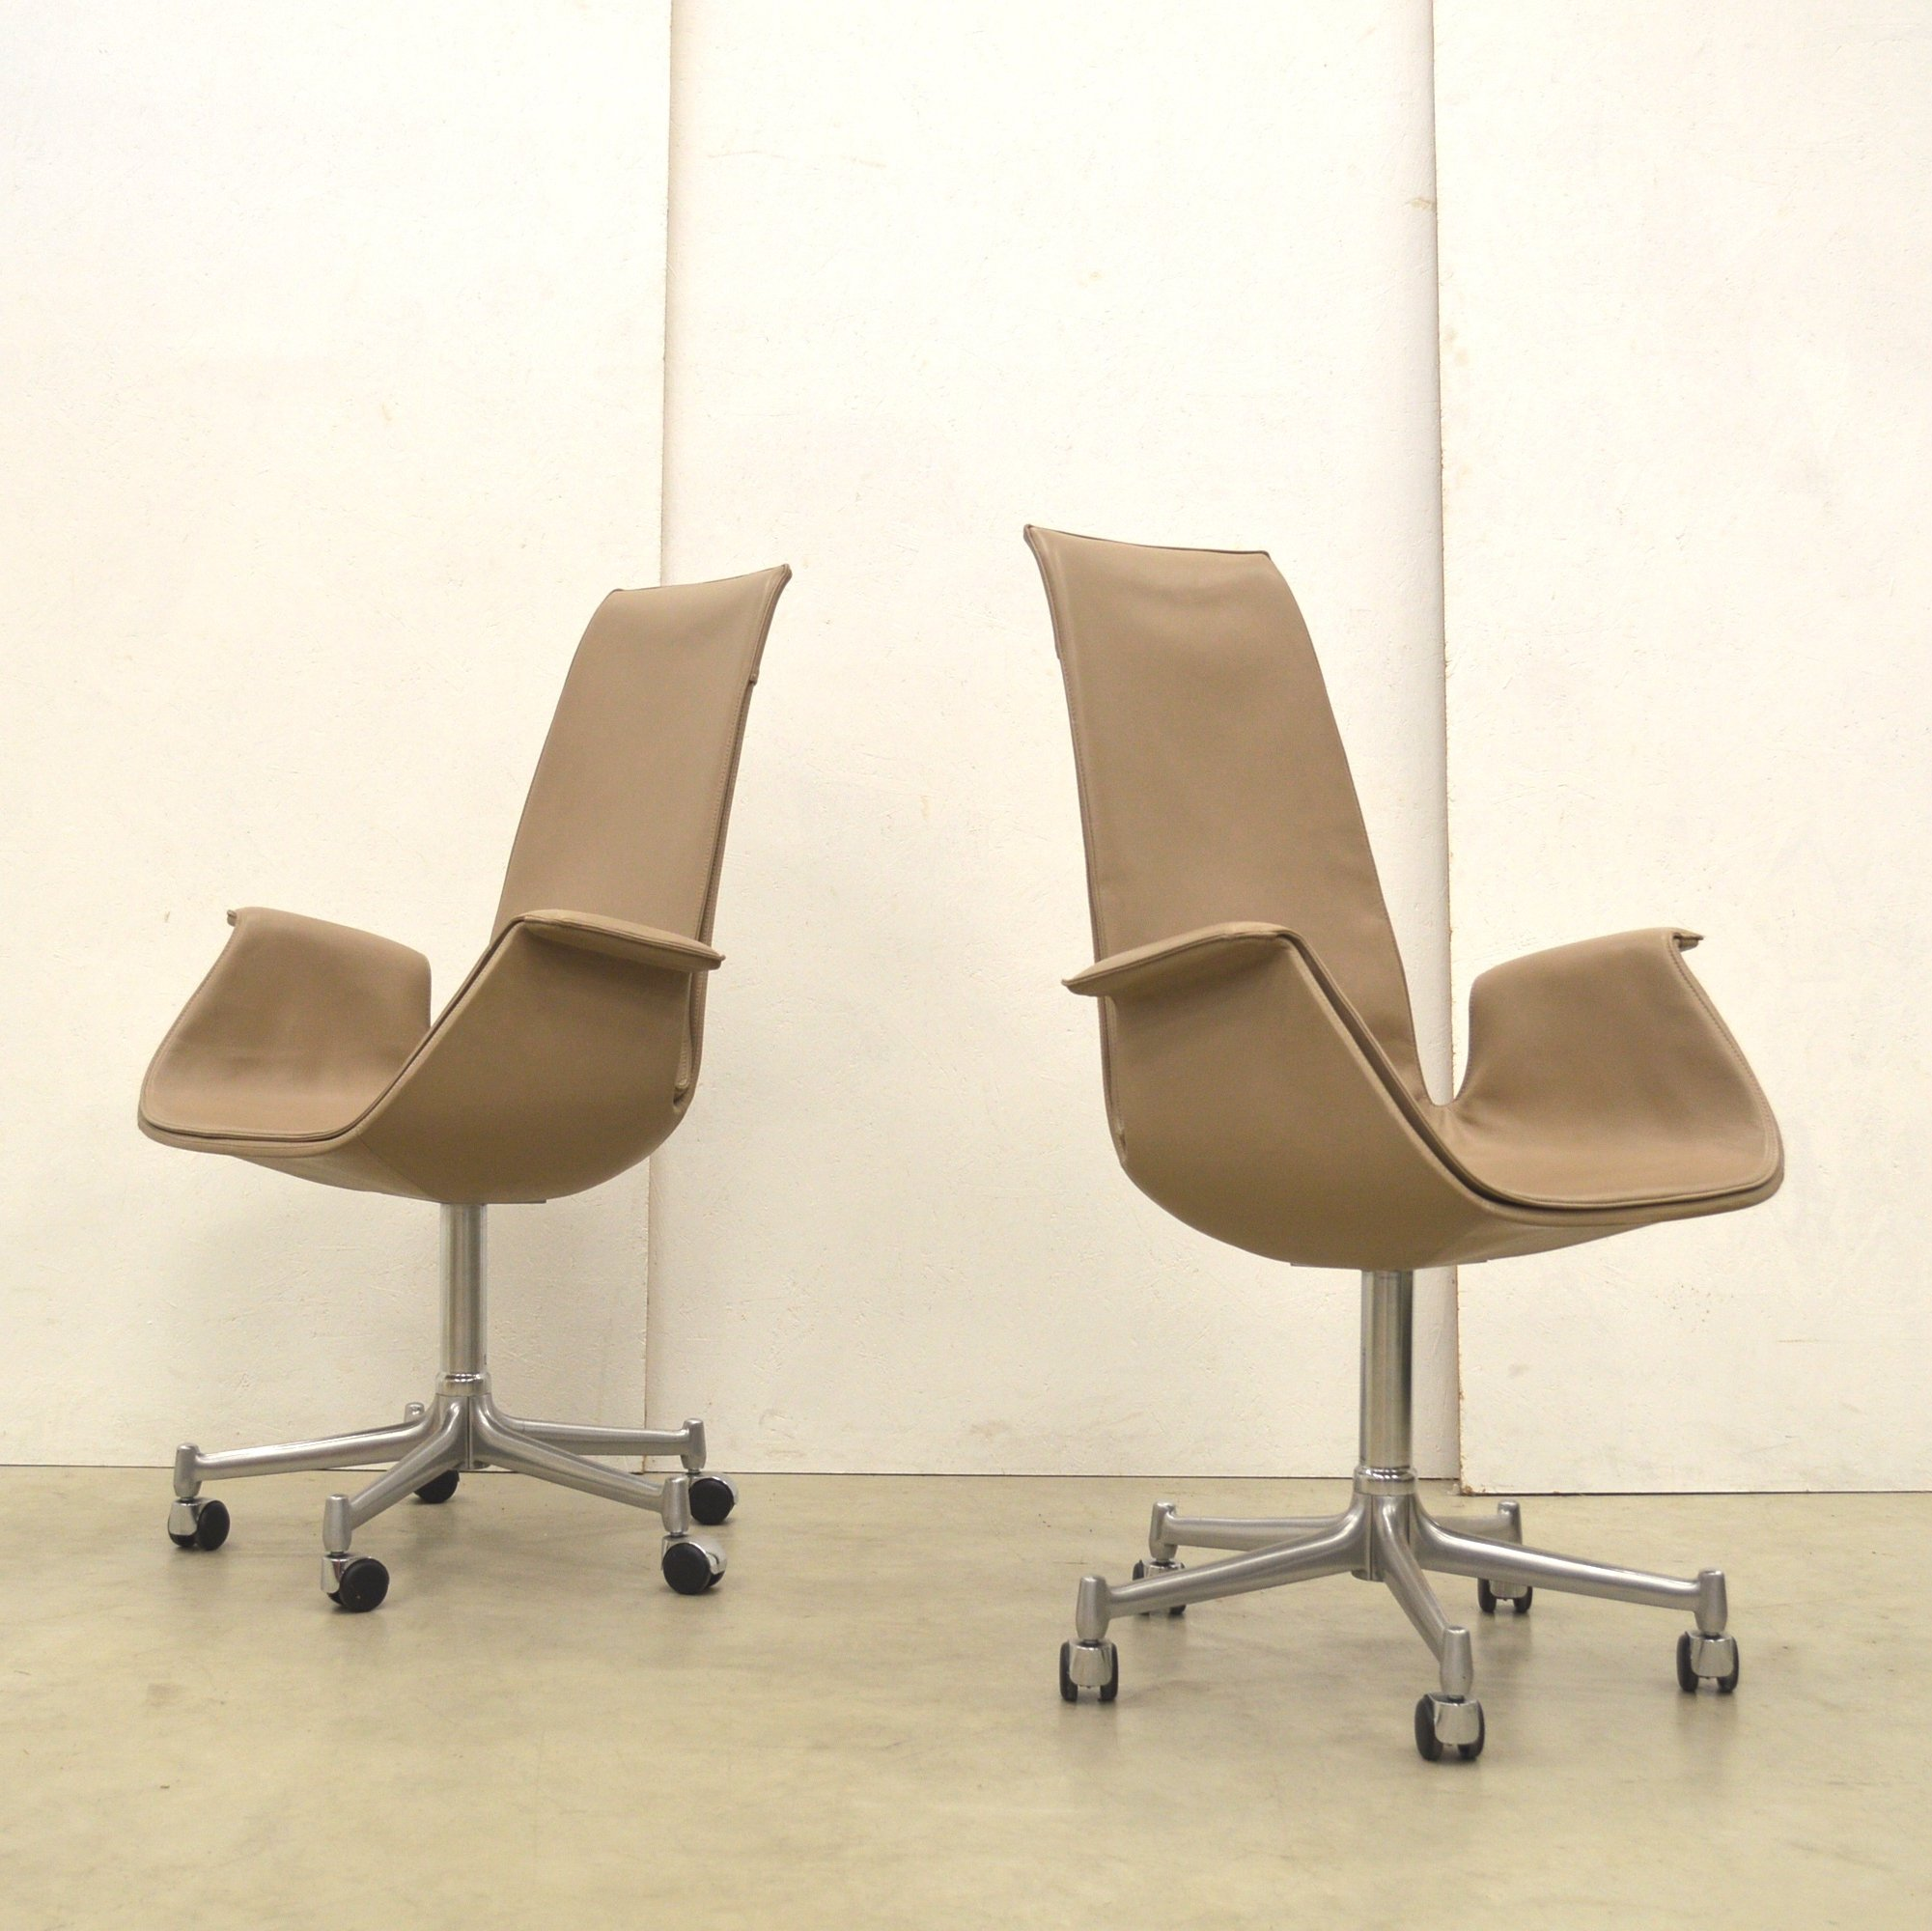 2 x fk6725 tulip office chair by jørgen kastholm preben fabricius for walter knoll 1980s 89198